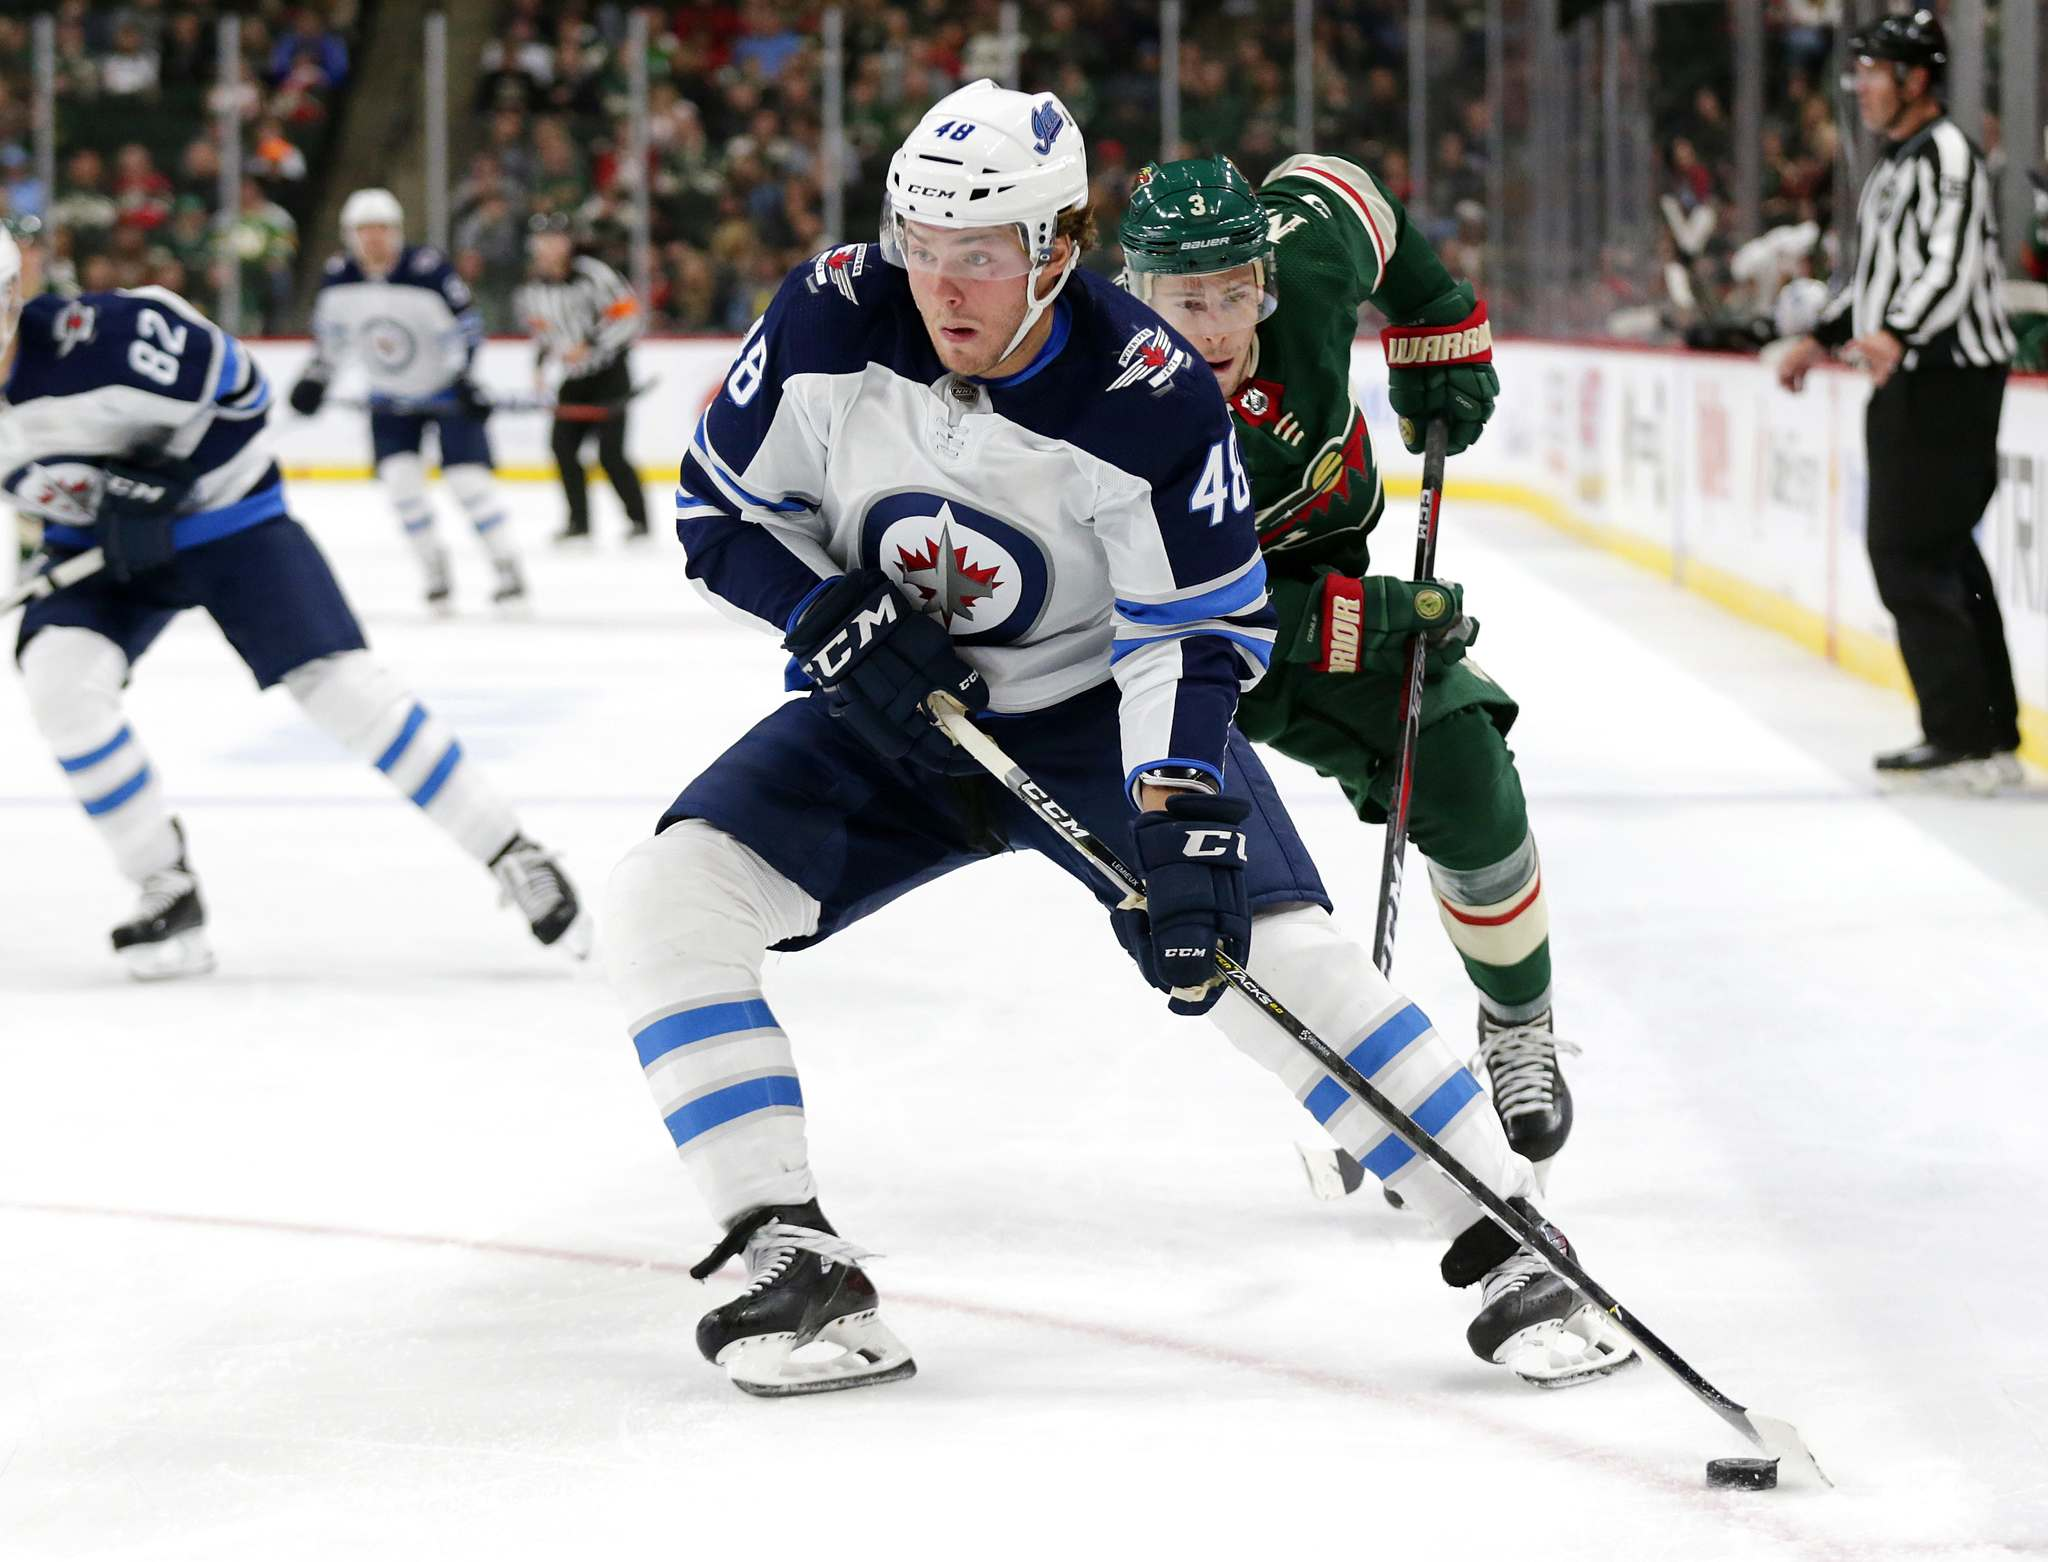 AP Photo/Andy Clayton-King</p><p>Winnipeg Jets left wing Brendan Lemieux controls the puck in front of Minnesota Wild right wing Charlie Coyle during the first period of a preseason NHL hockey game Wednesday in St. Paul, Minn. </p>